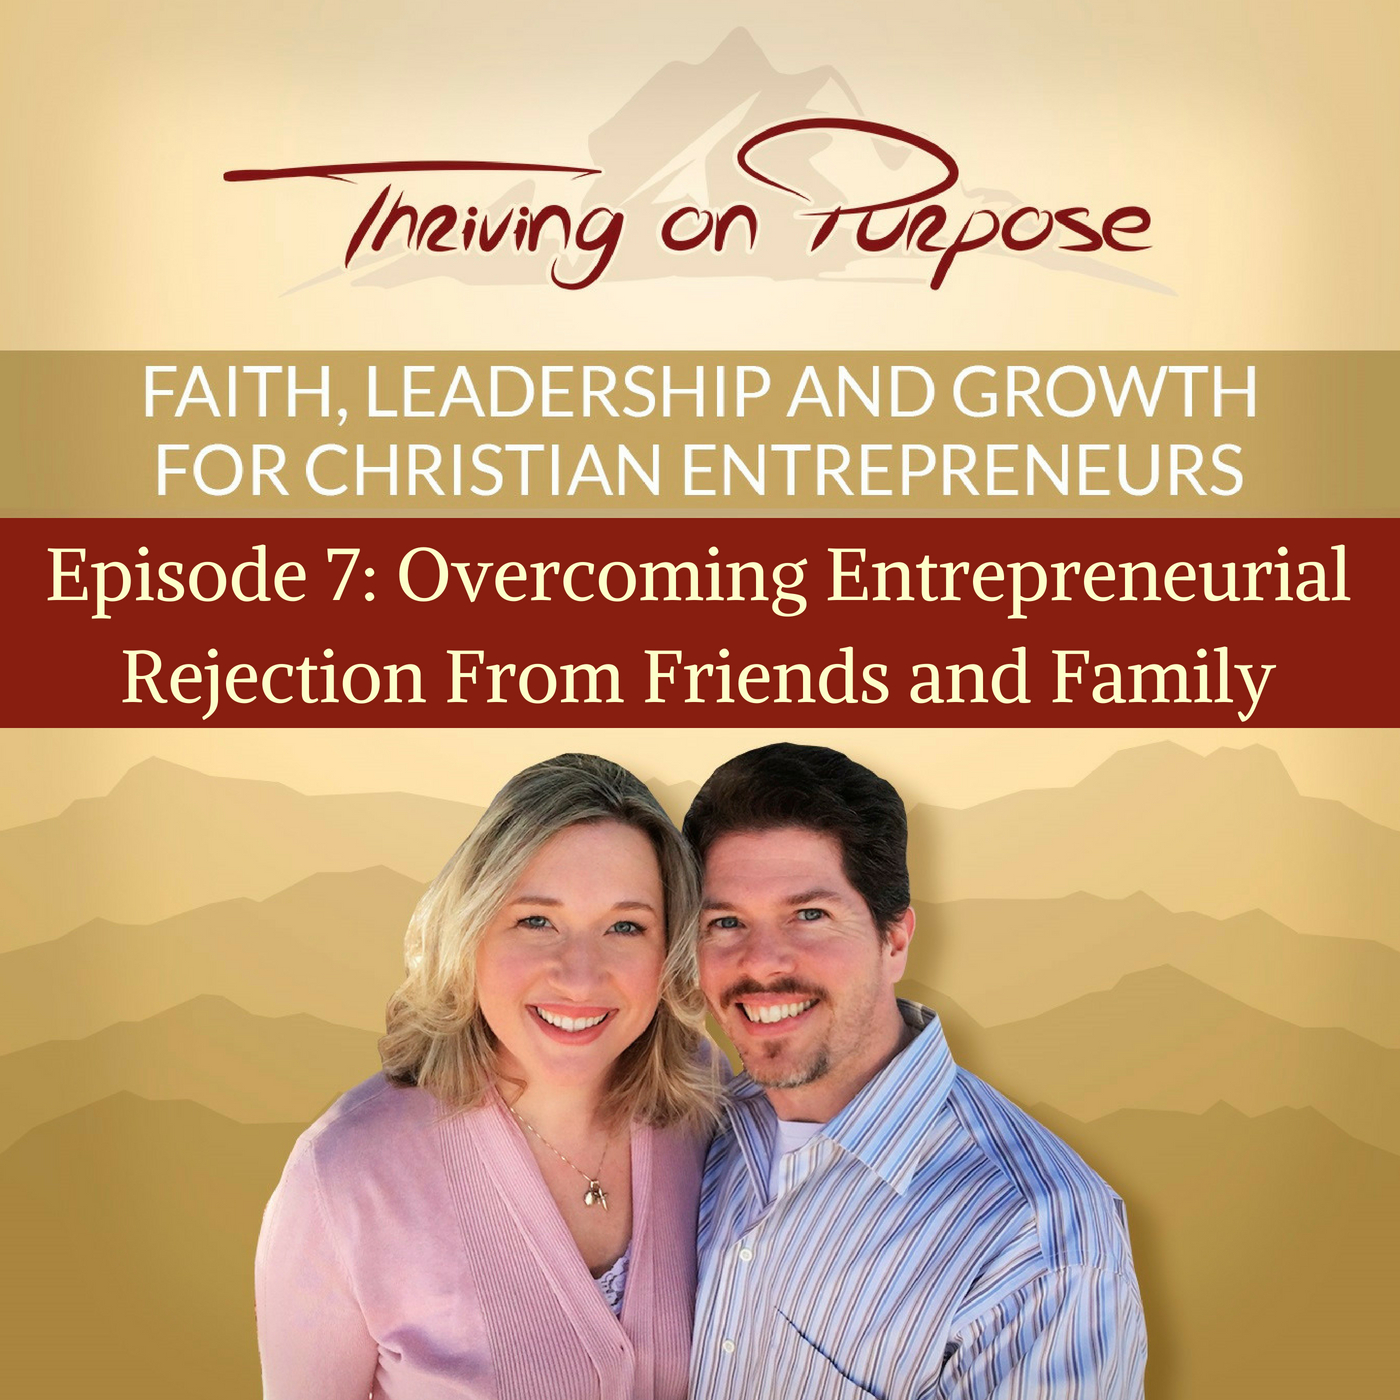 Artwork for podcast Thriving on Purpose Podcast